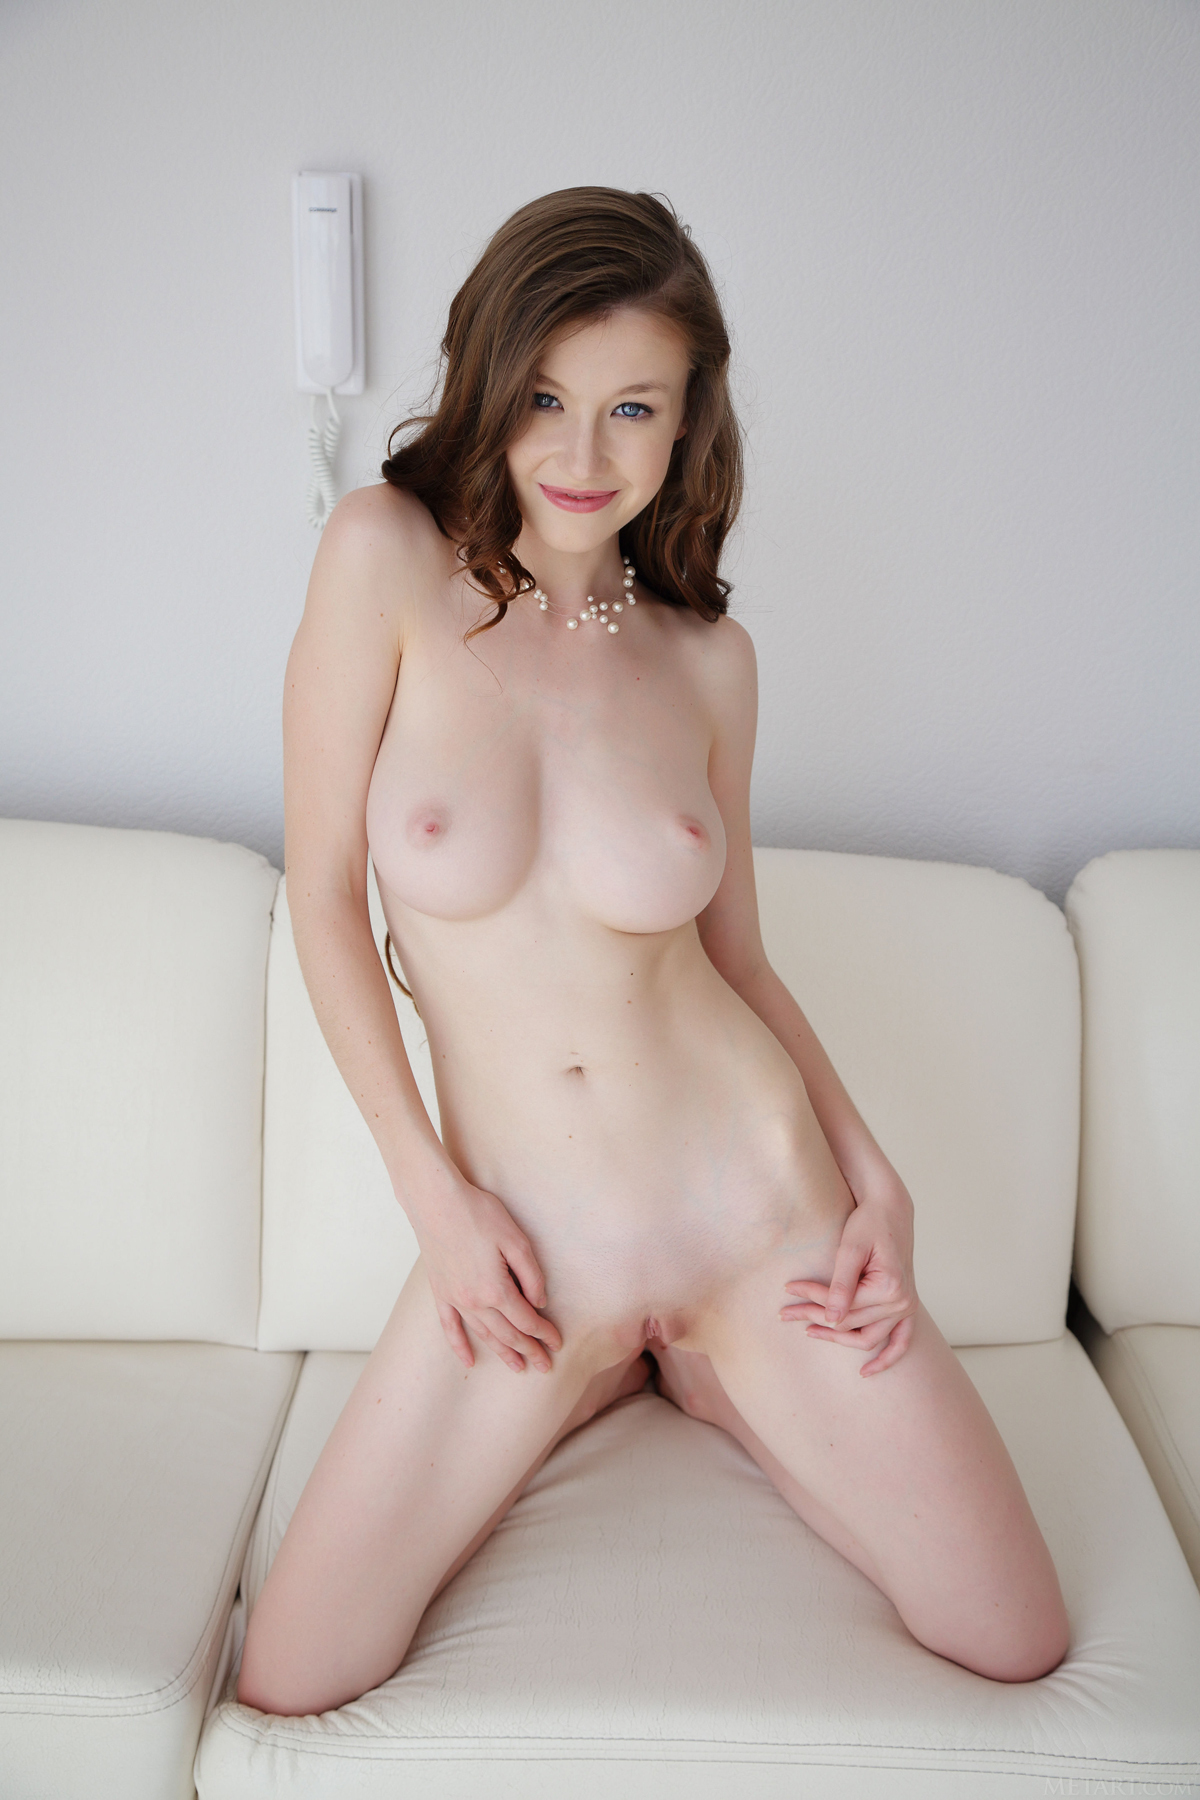 emily bloom beautiful pussy pics from met-art - picture 08